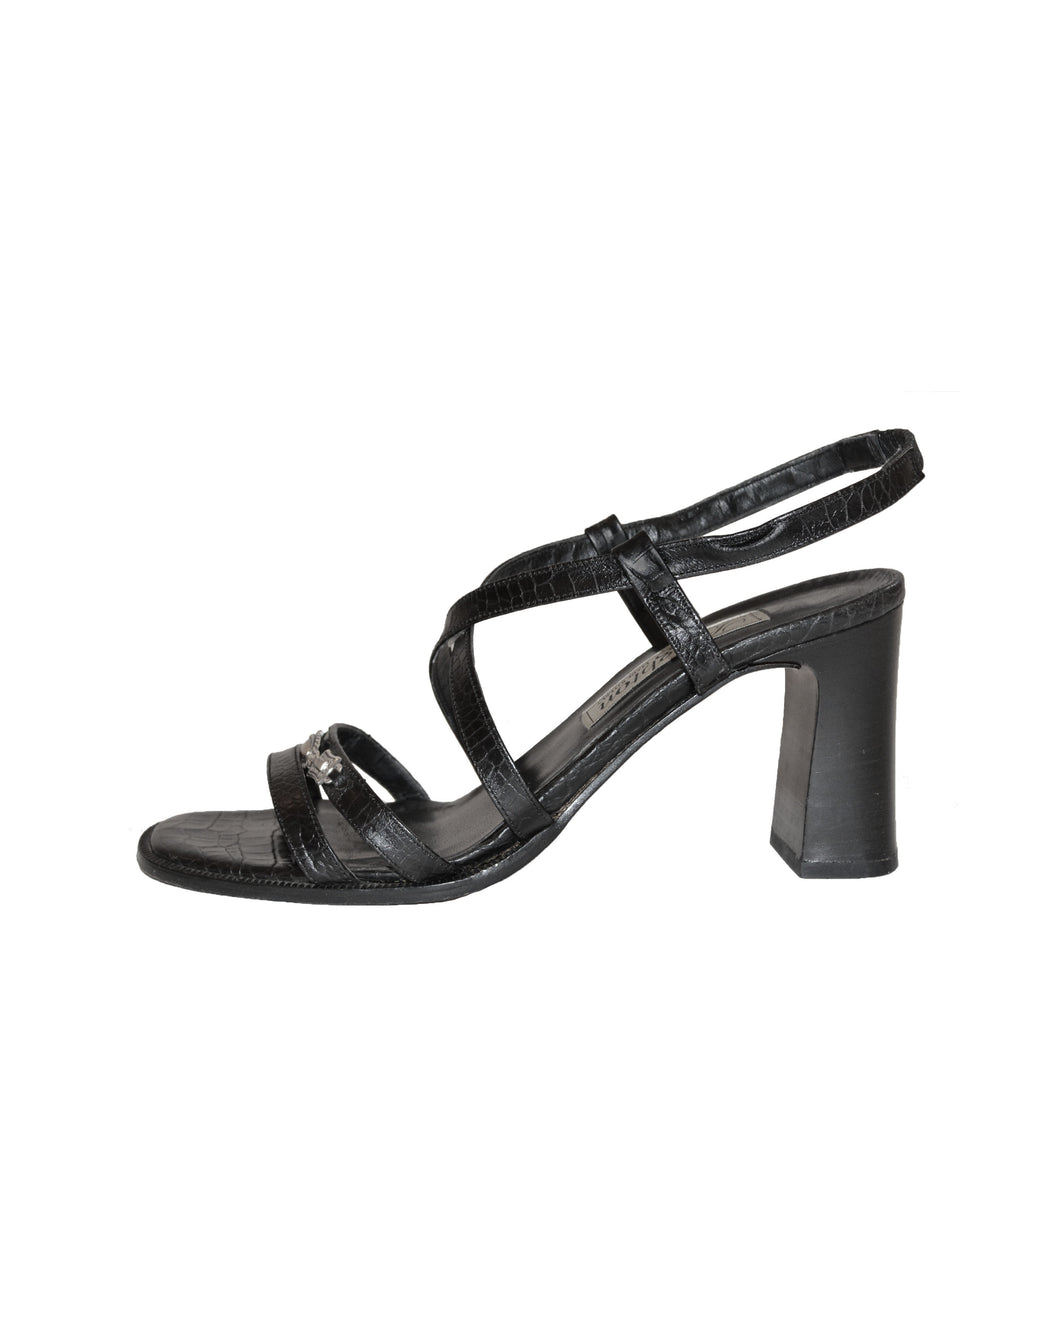 STRAPPY DOWN UNDER SANDAL - WOMEN'S SIZE 7 1/2